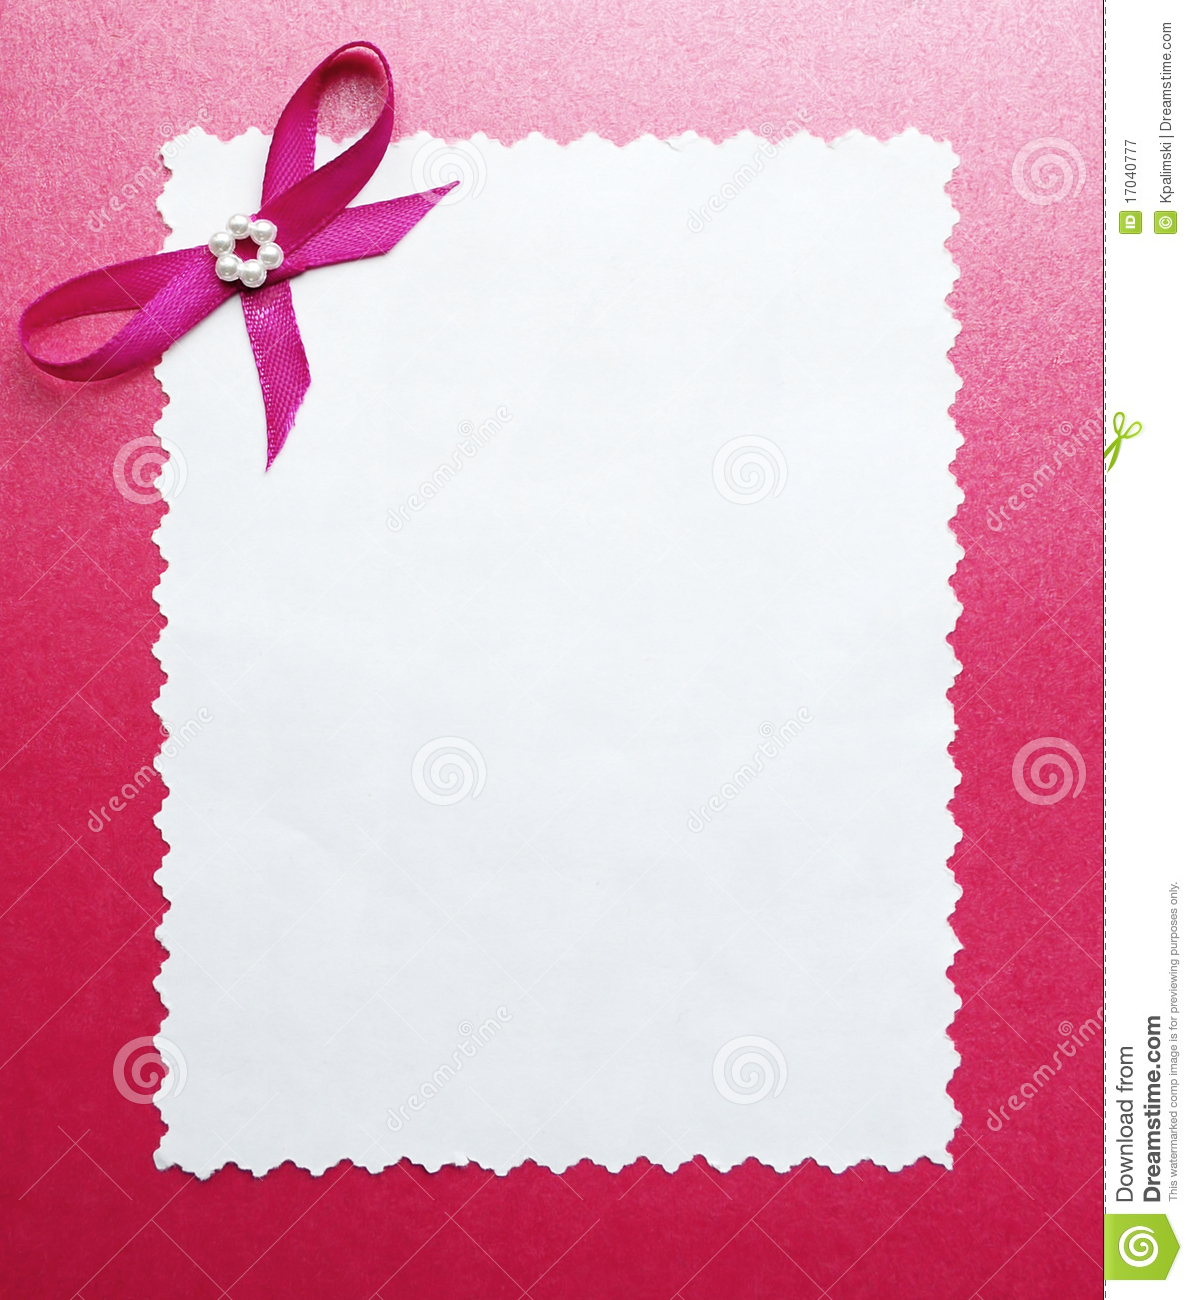 Wedding Paper Card Frame Border Stock Images Download 4 113